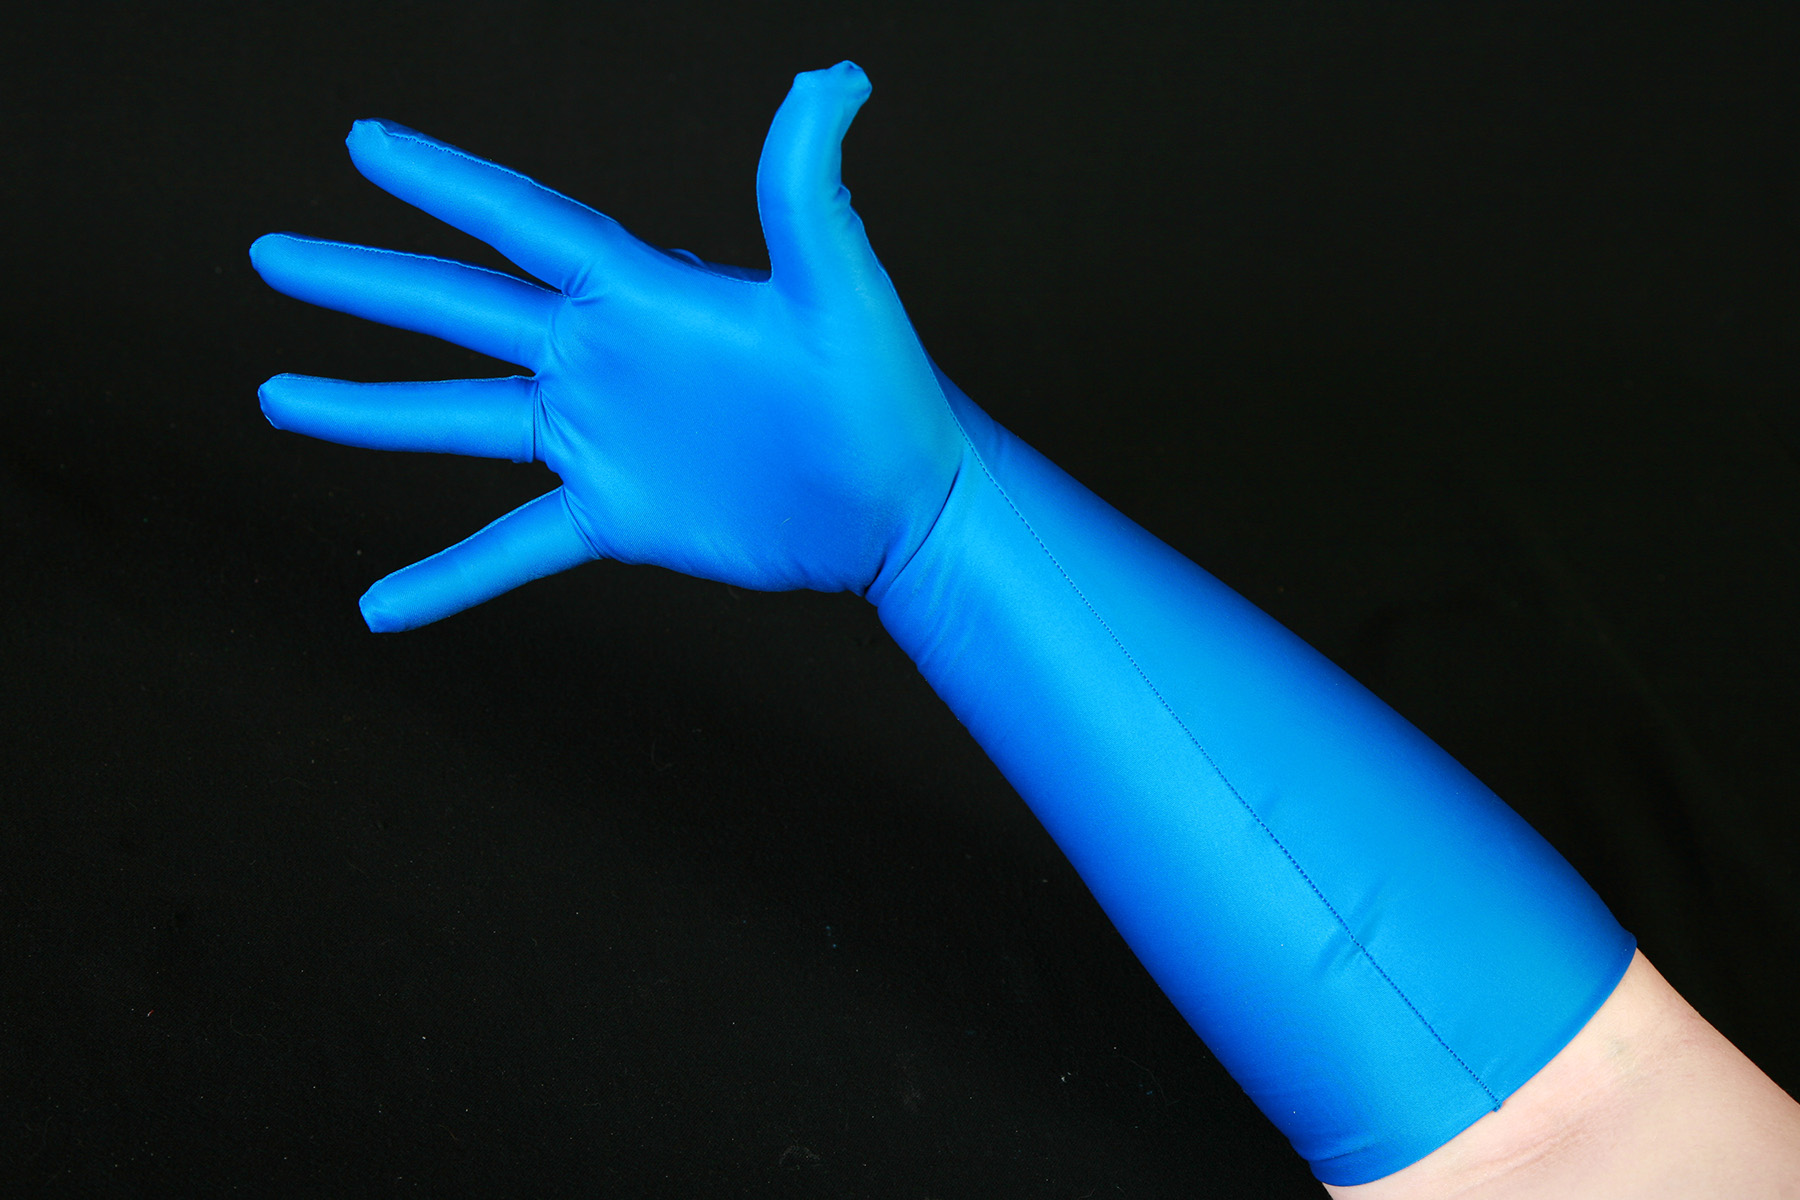 A hand wearing a blue spandex glove against a black background.